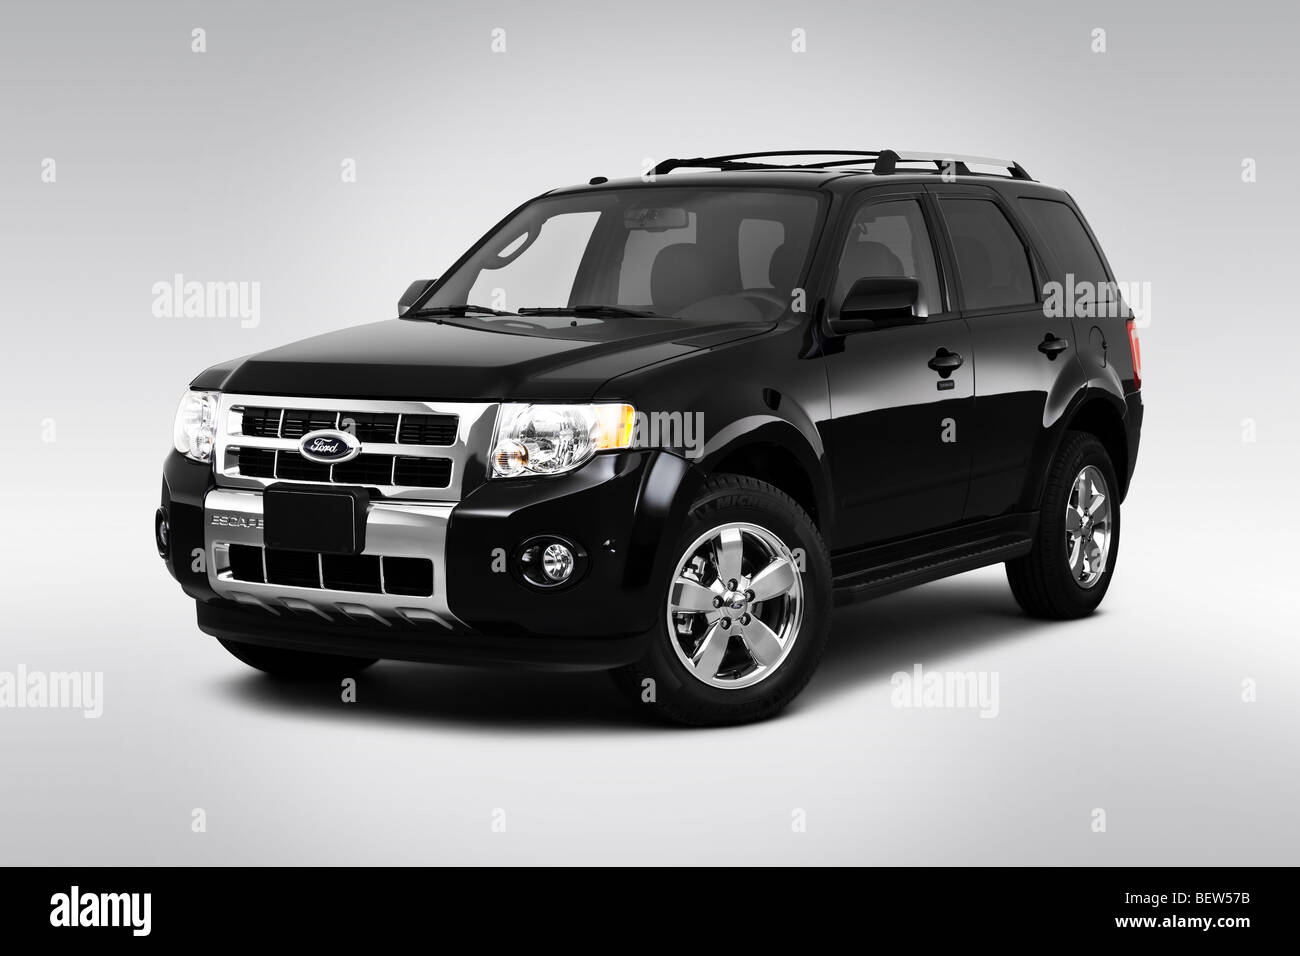 2010 ford escape limited in black front angle view BEW57B - 2010 Ford Escape Limited Ffv